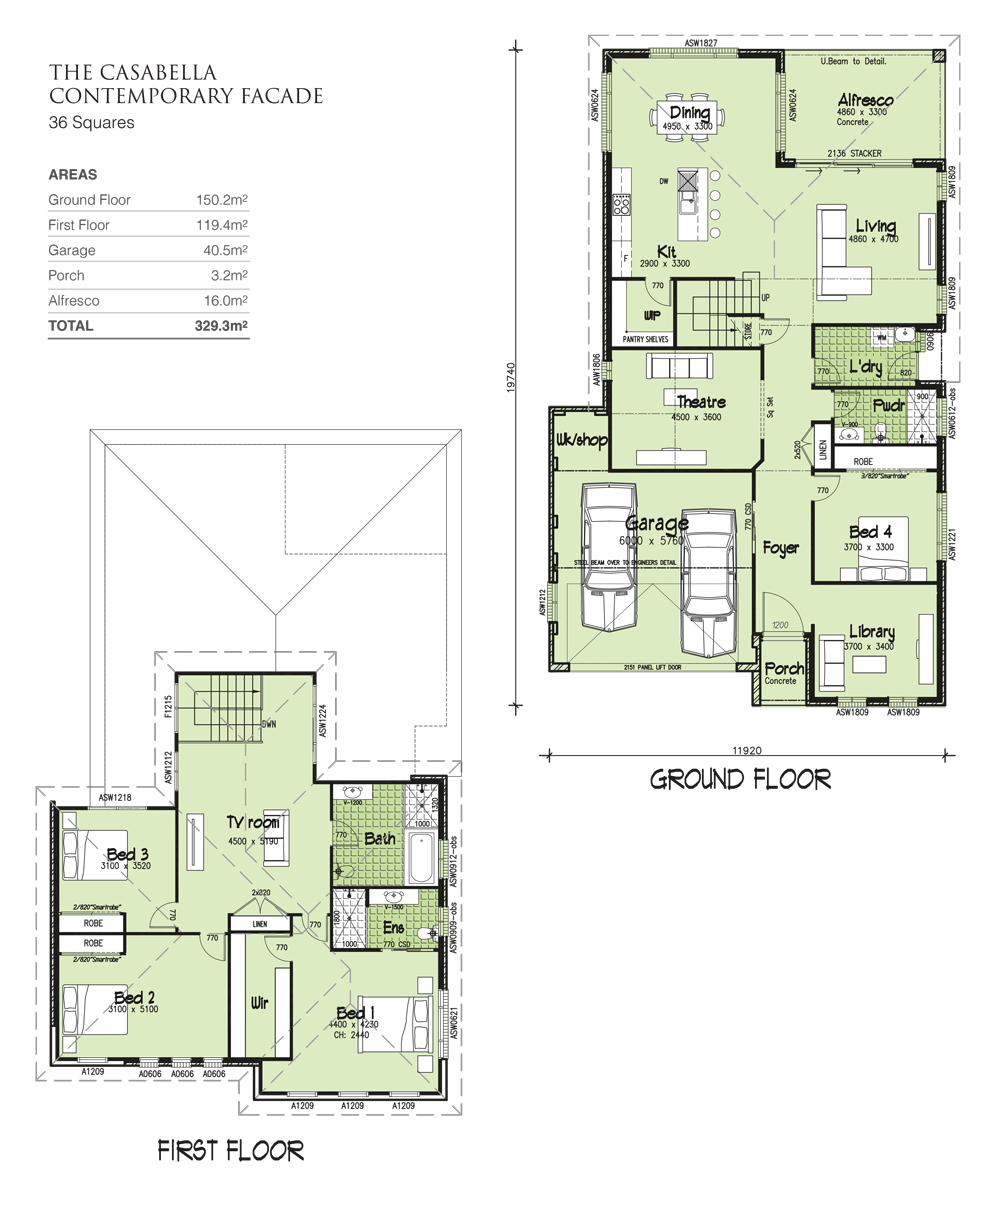 Casabella Double storey, Home Design, Tullipan Homes